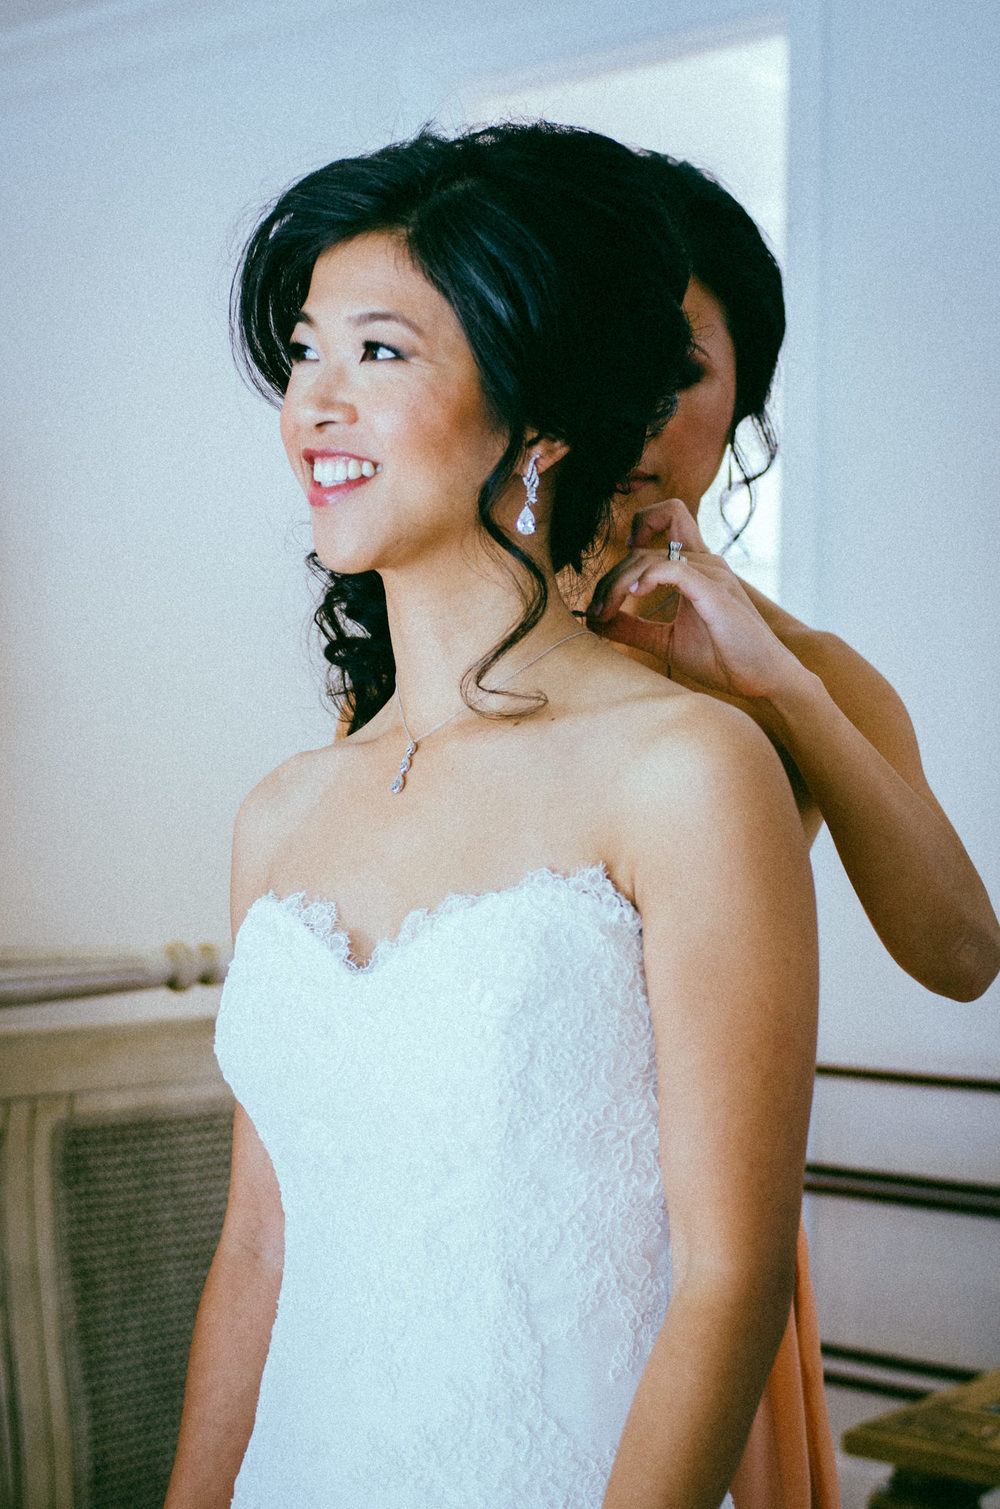 Alice_&_Aaron_Wedding_by_The_Light_&_Glass_Photography-026.jpg